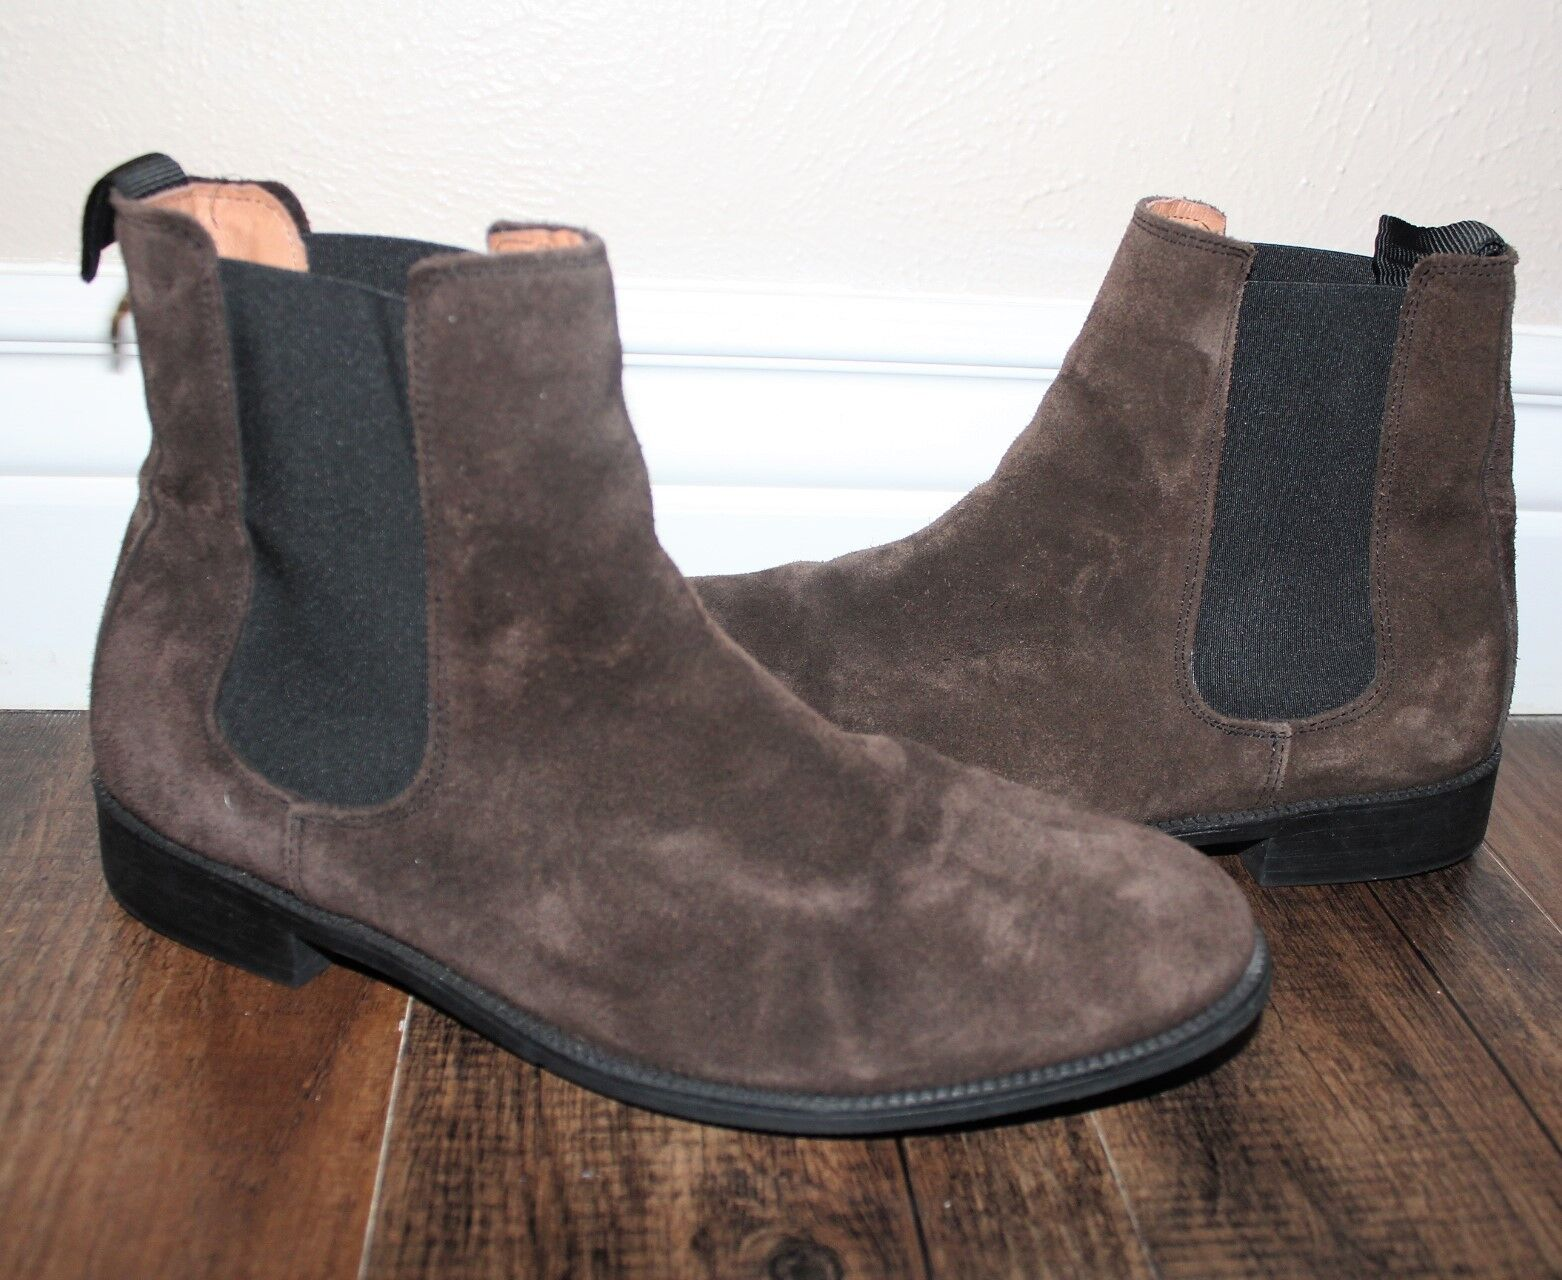 H&M Dark Brown Suede Chelsea Boots EU 43 Men's Size 10 Women's Size 11